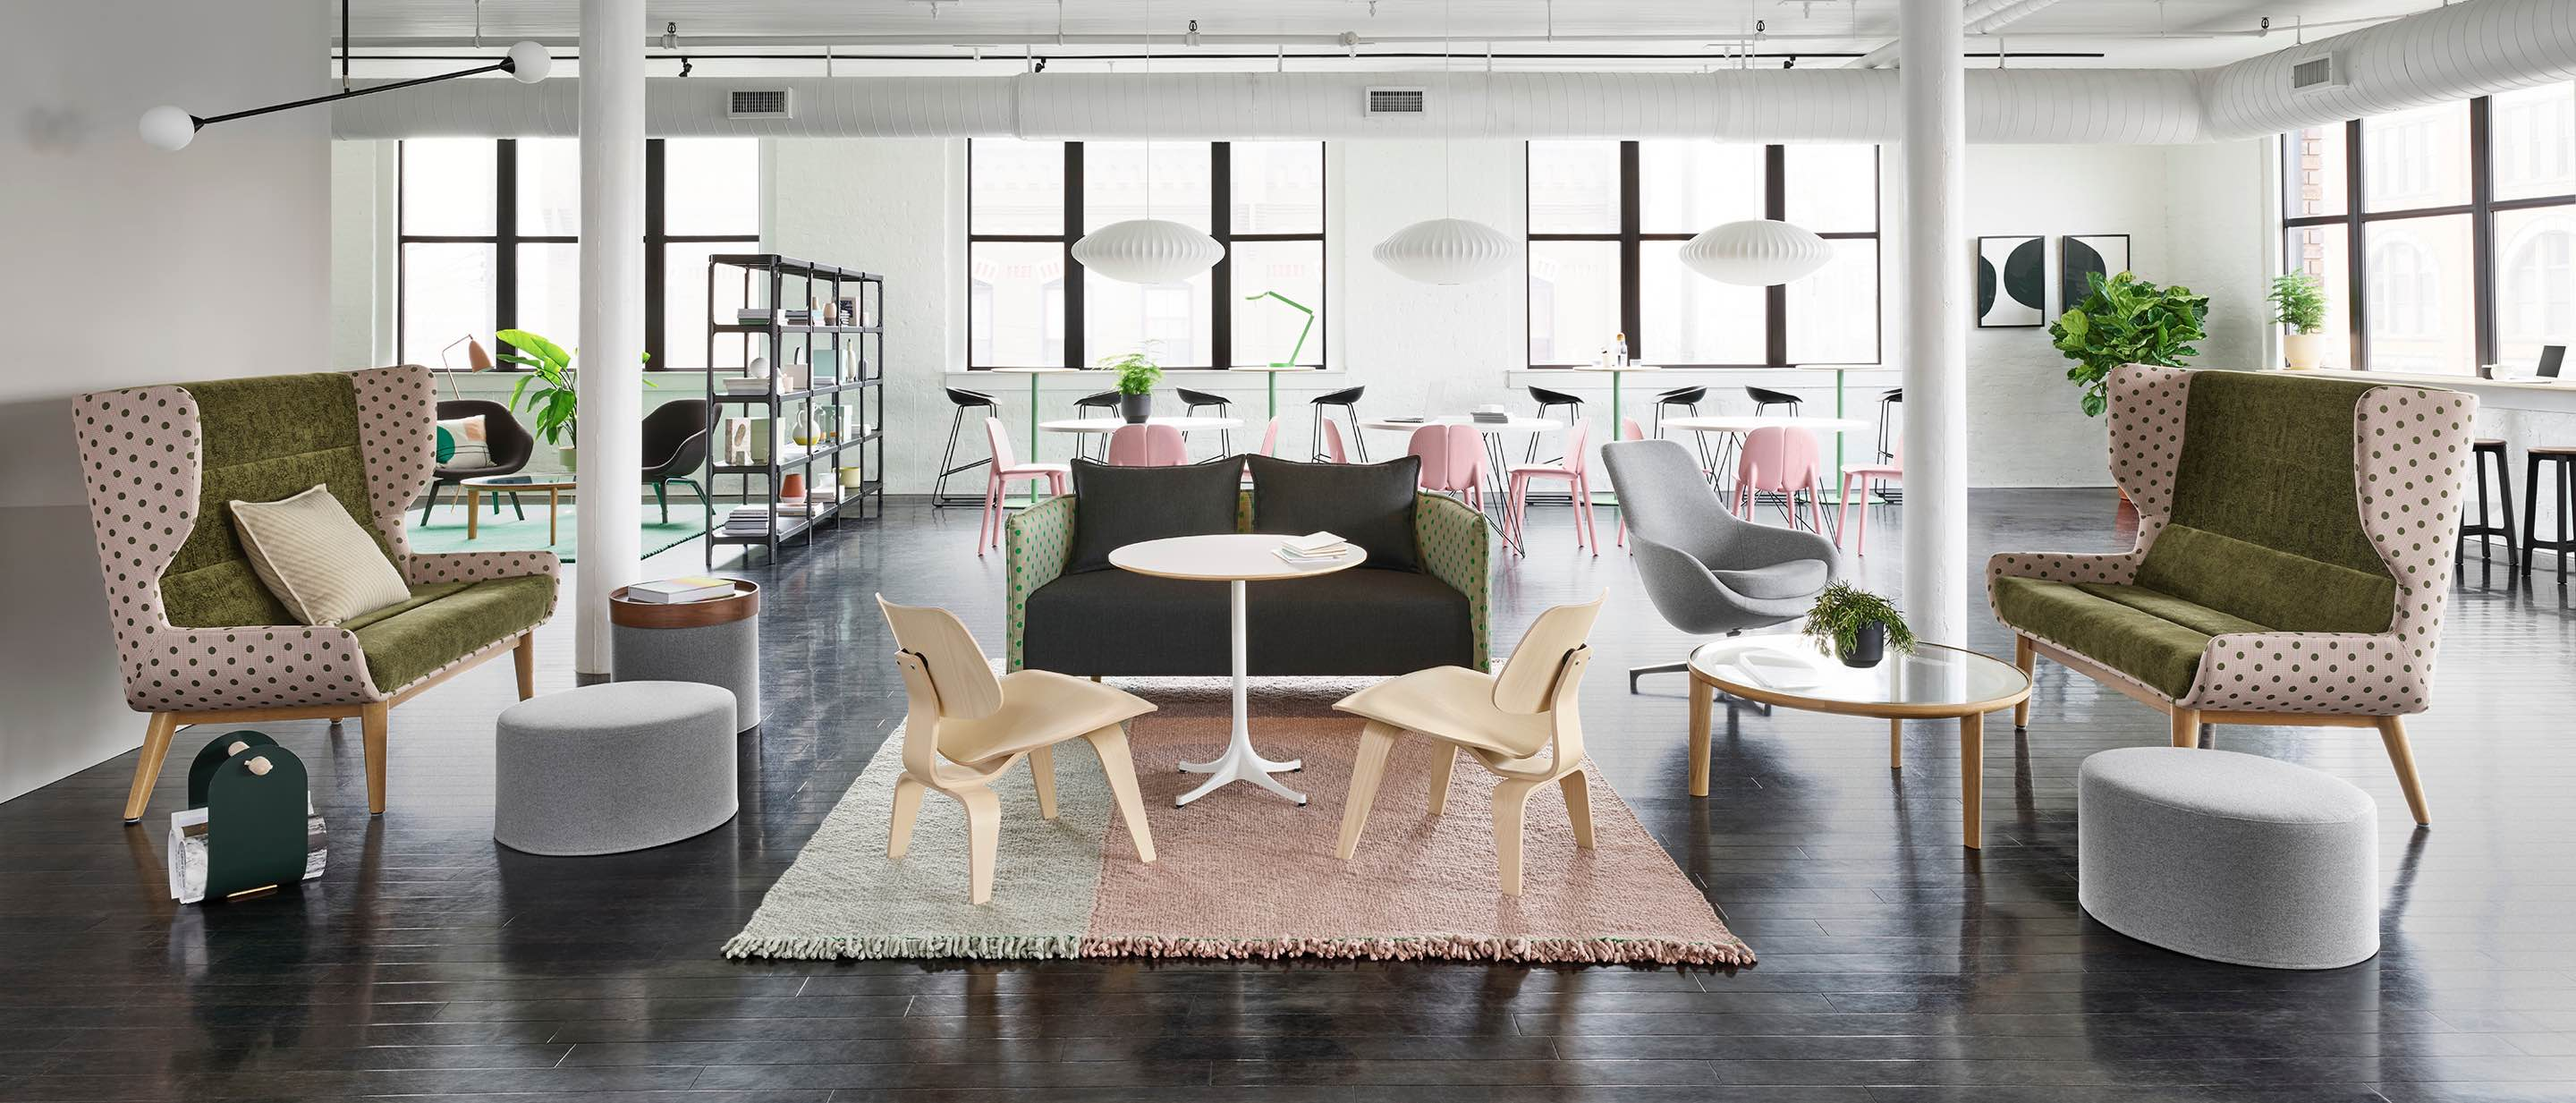 Open bright loft space with pink and green polka-dotted sofas, two-tone rug, wooden Eames lounge chairs, and gray poufs in front of trio of café tables and pink chairs.